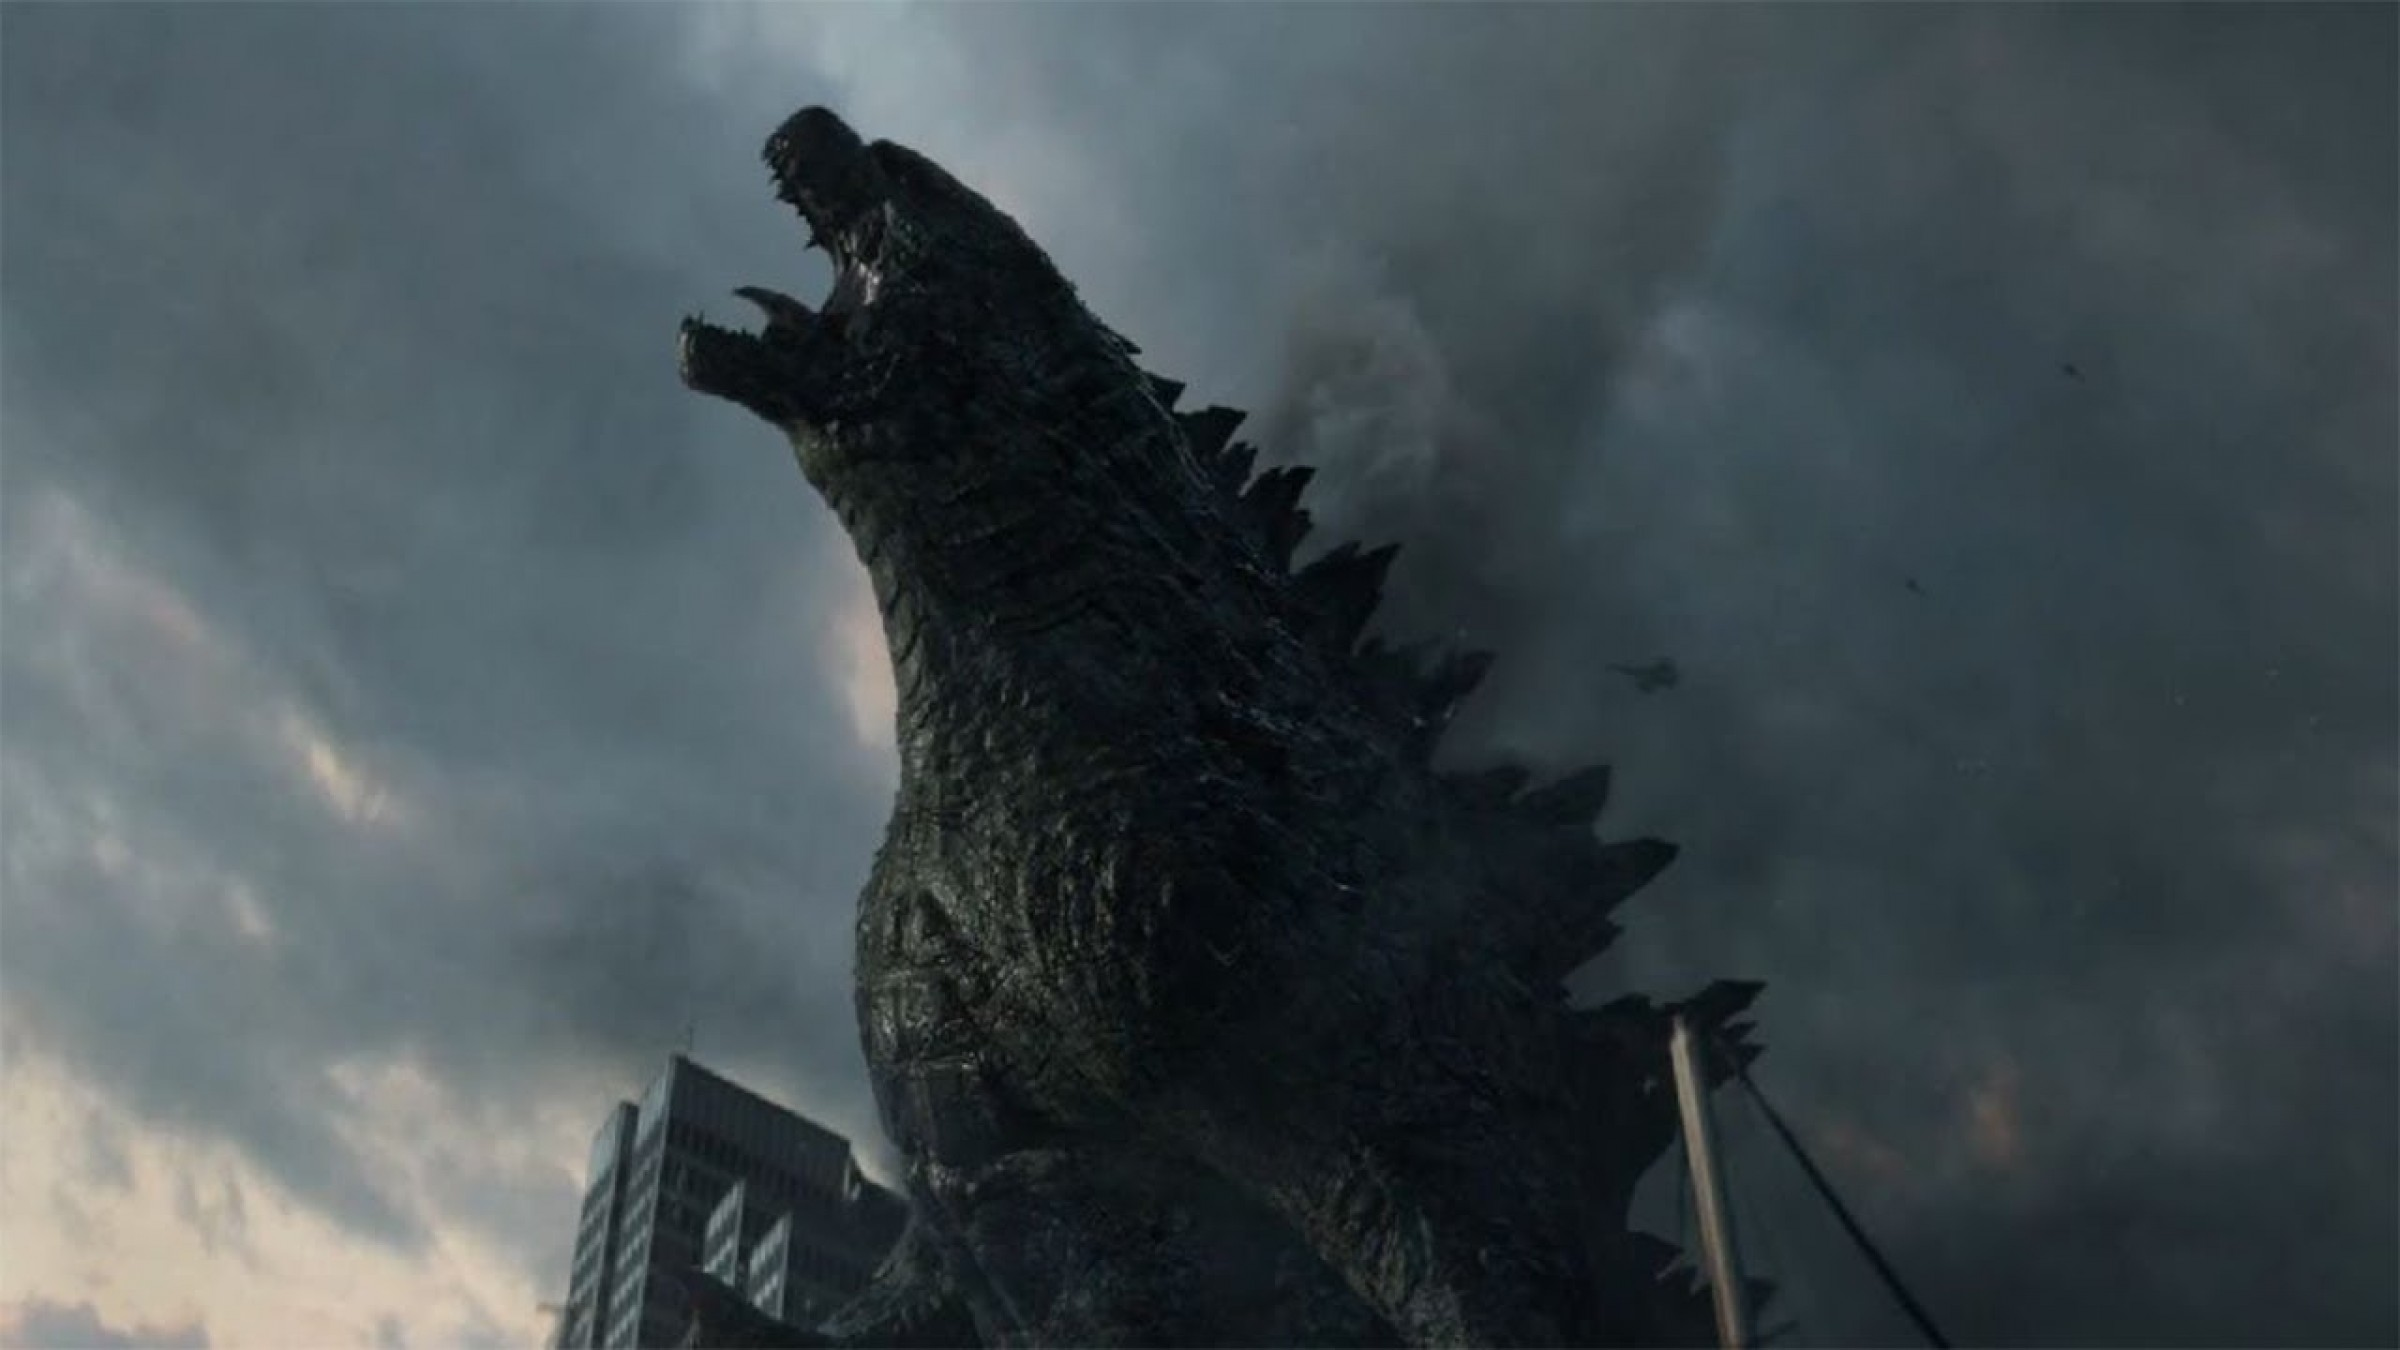 A Behind the Scenes Look at Creating the Dark & Powerful Sound Design of 'Godzilla'